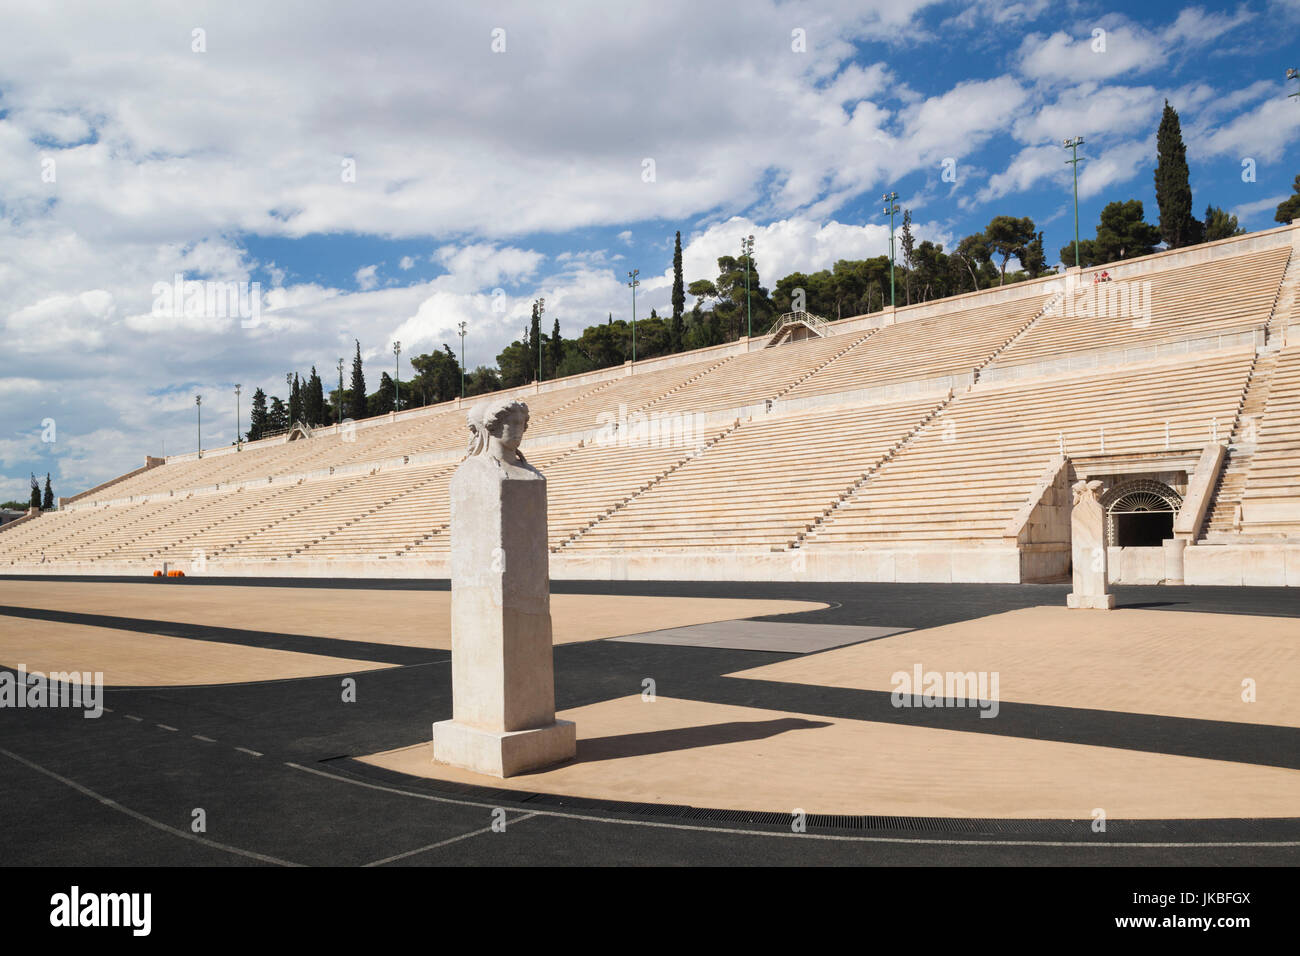 Greece, Central Greece Region, Athens, the Panathenaic Stadium, home of the first modern Olympic Games in 1896 Stock Photo